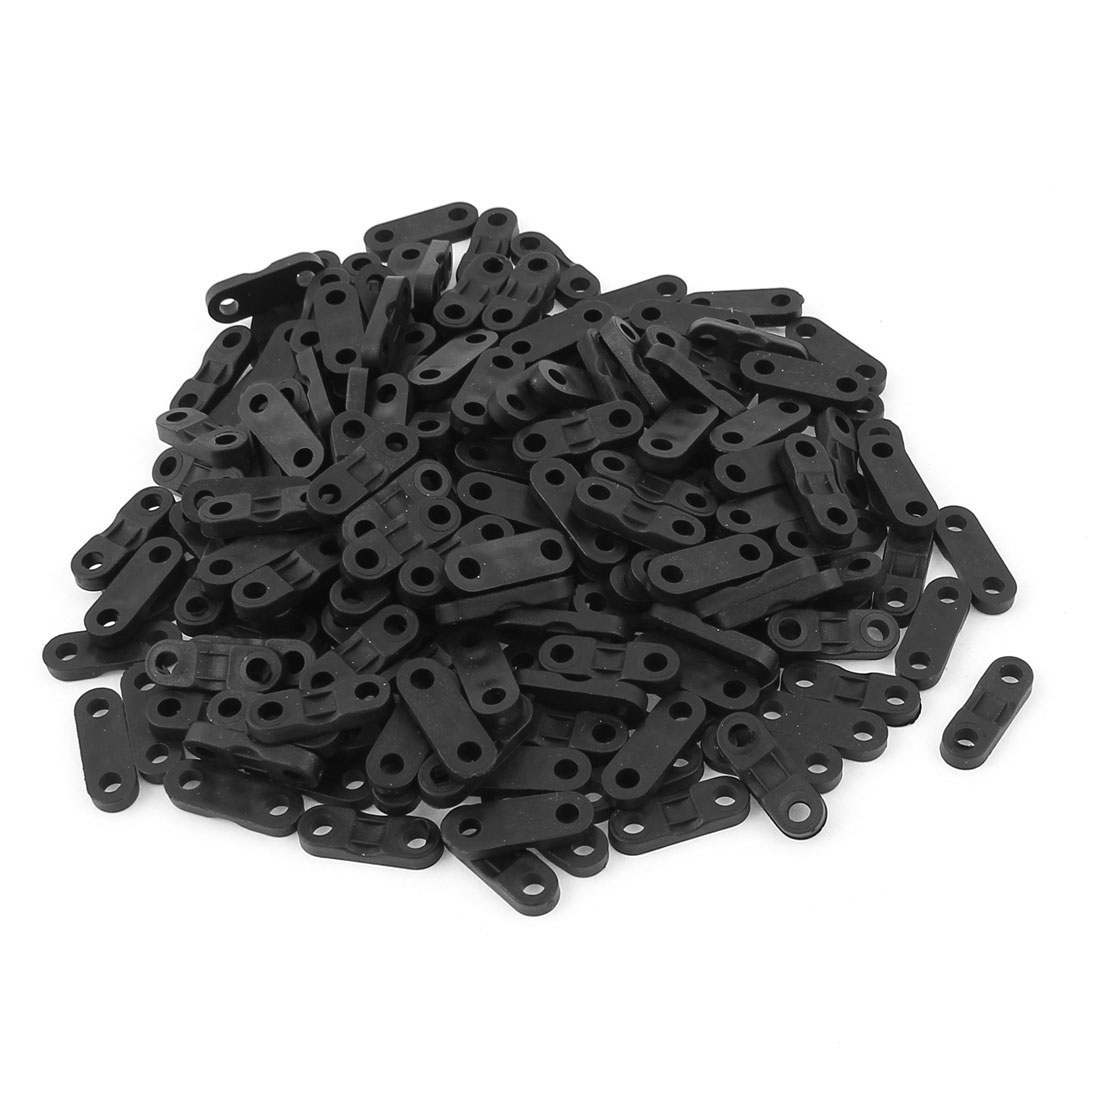 200Pcs Black Plastic Cable Clip Clamp Wire Tie Mount Screws Fixed Base Fasteners